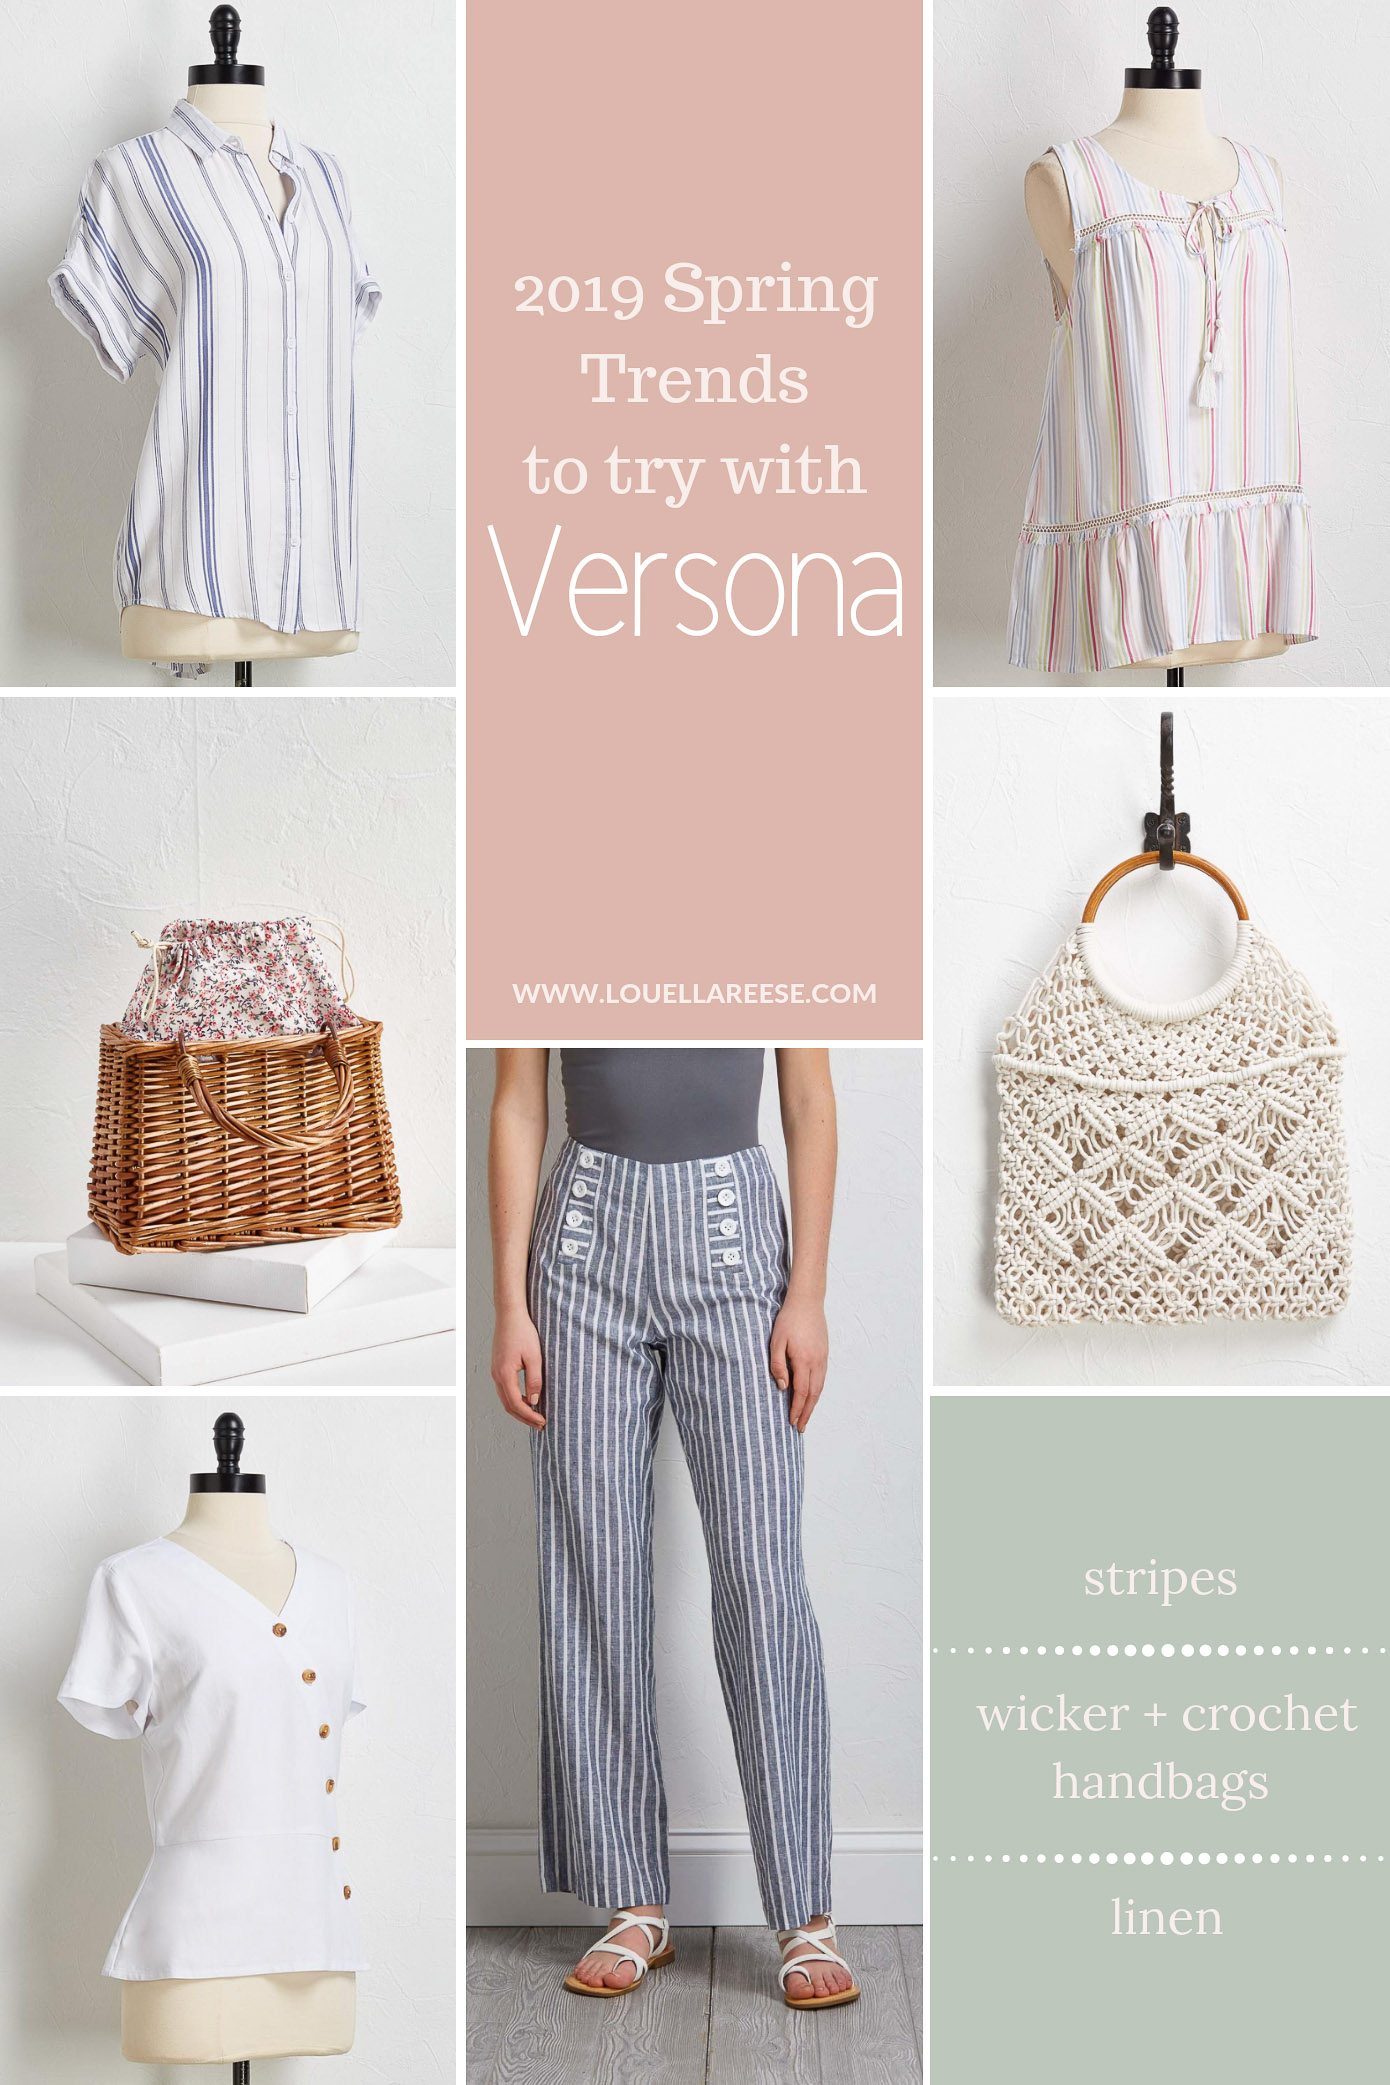 Spring Trends to Try with Versona | Louella Reese